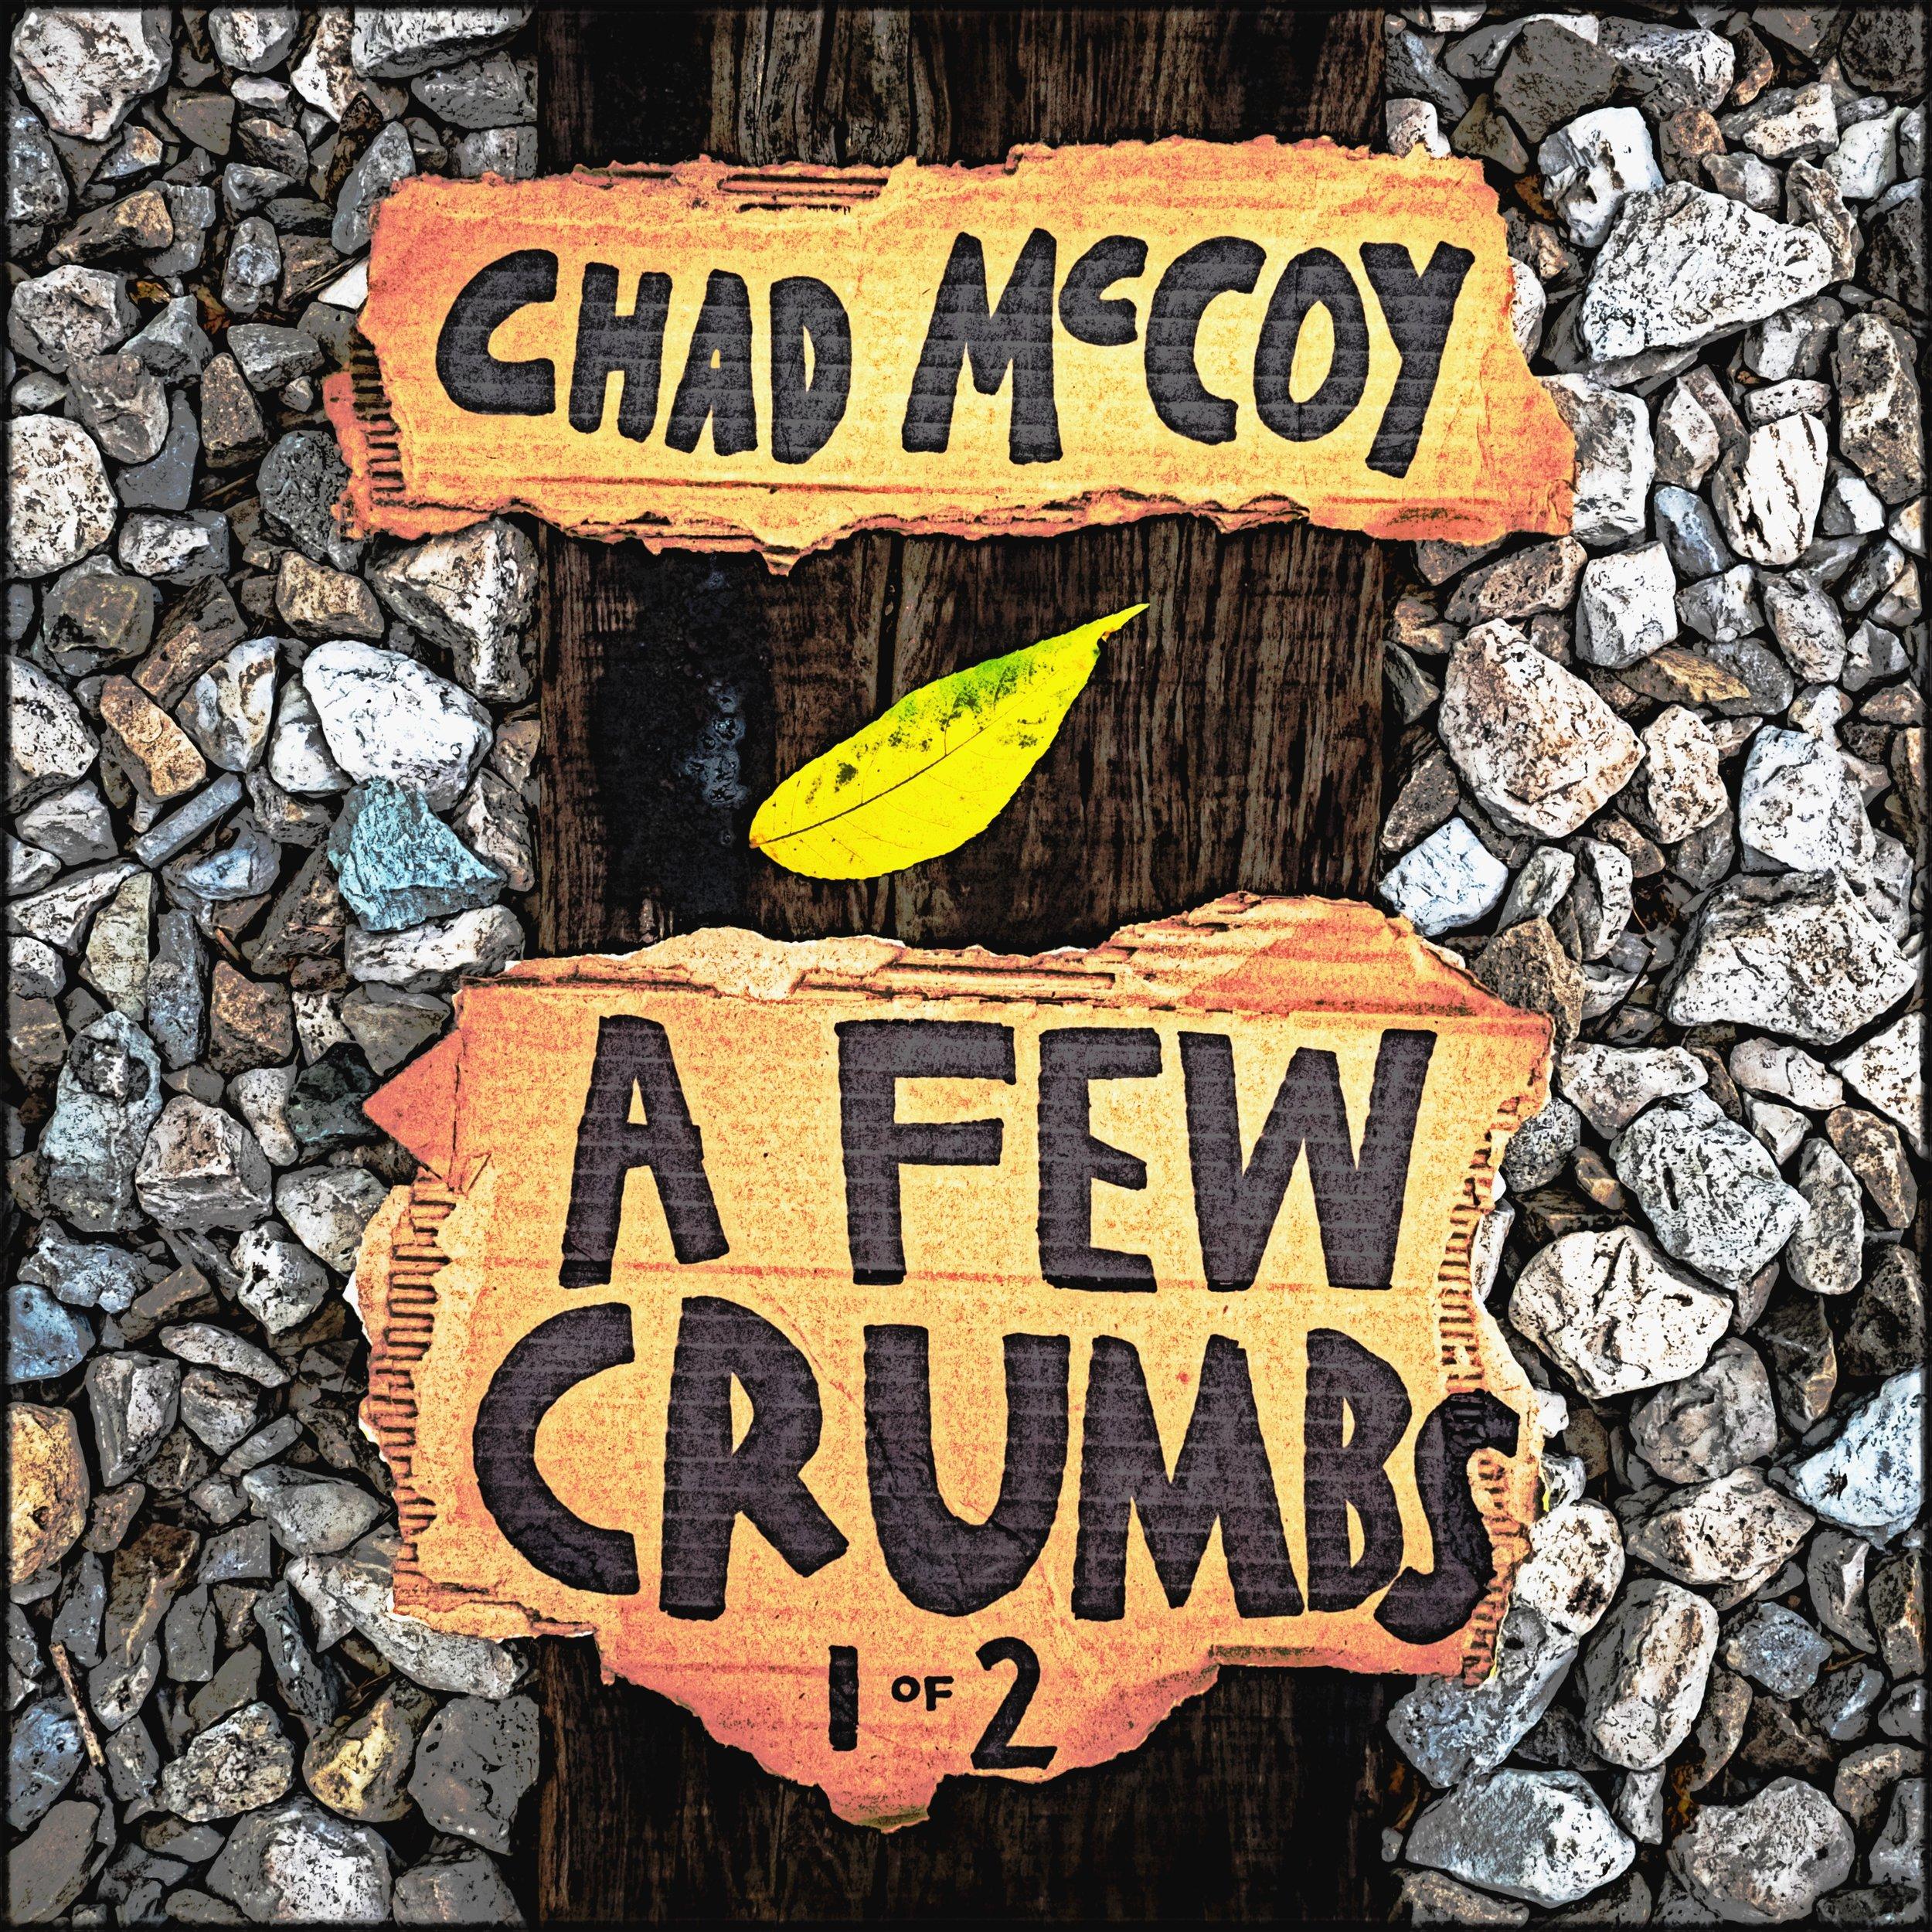 A Few Crumbs,1 of 2 - Released March 2017 - Produced by Chad McCoy and Chris Colvin at Studio A